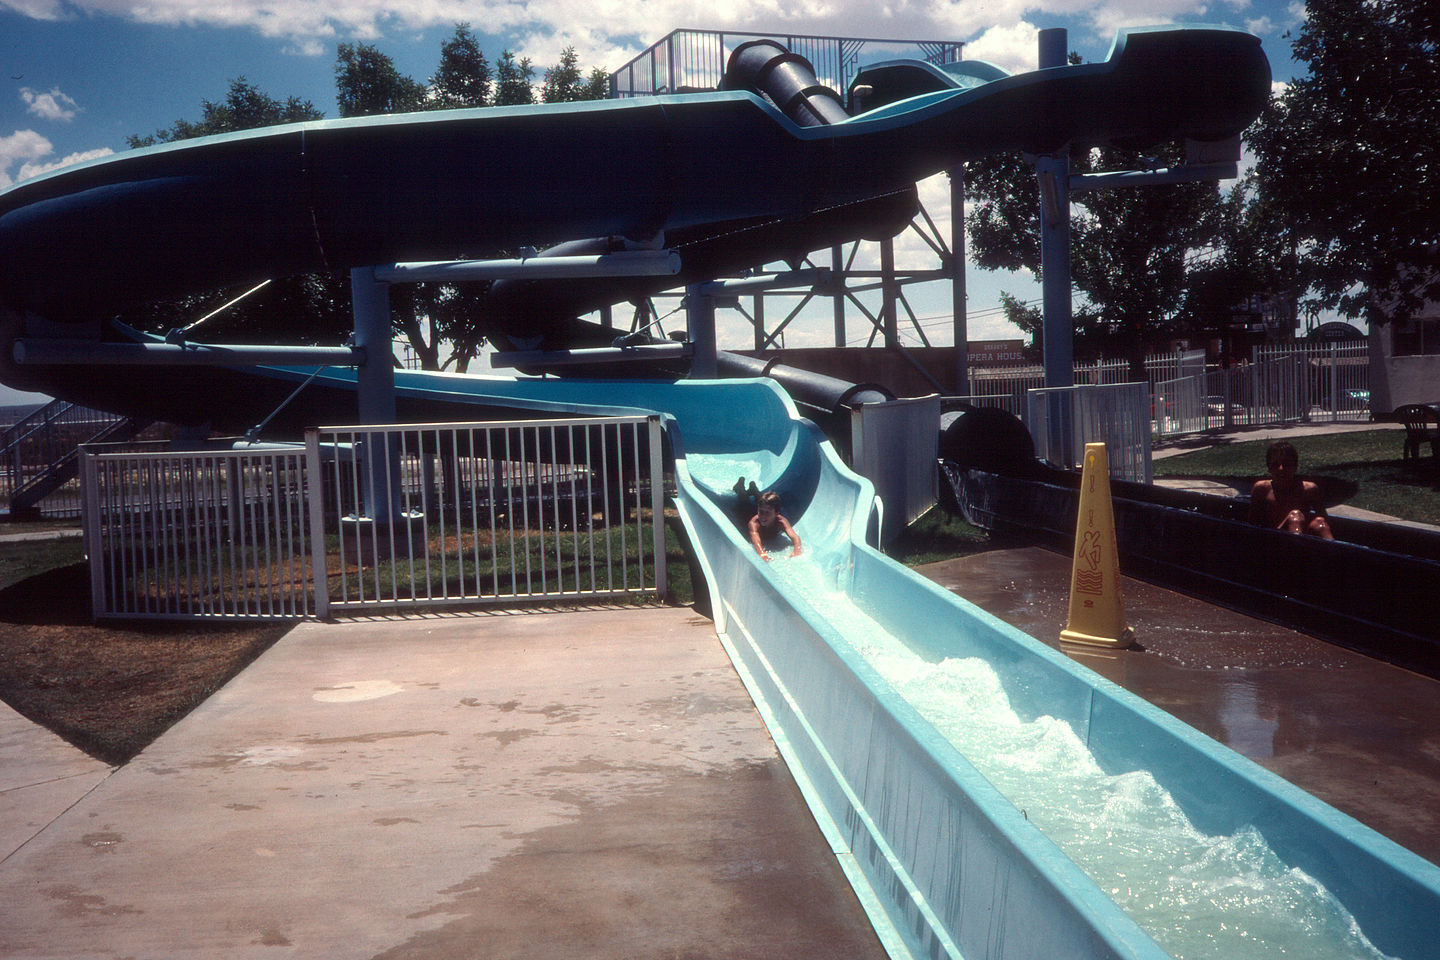 Fun at White City water park